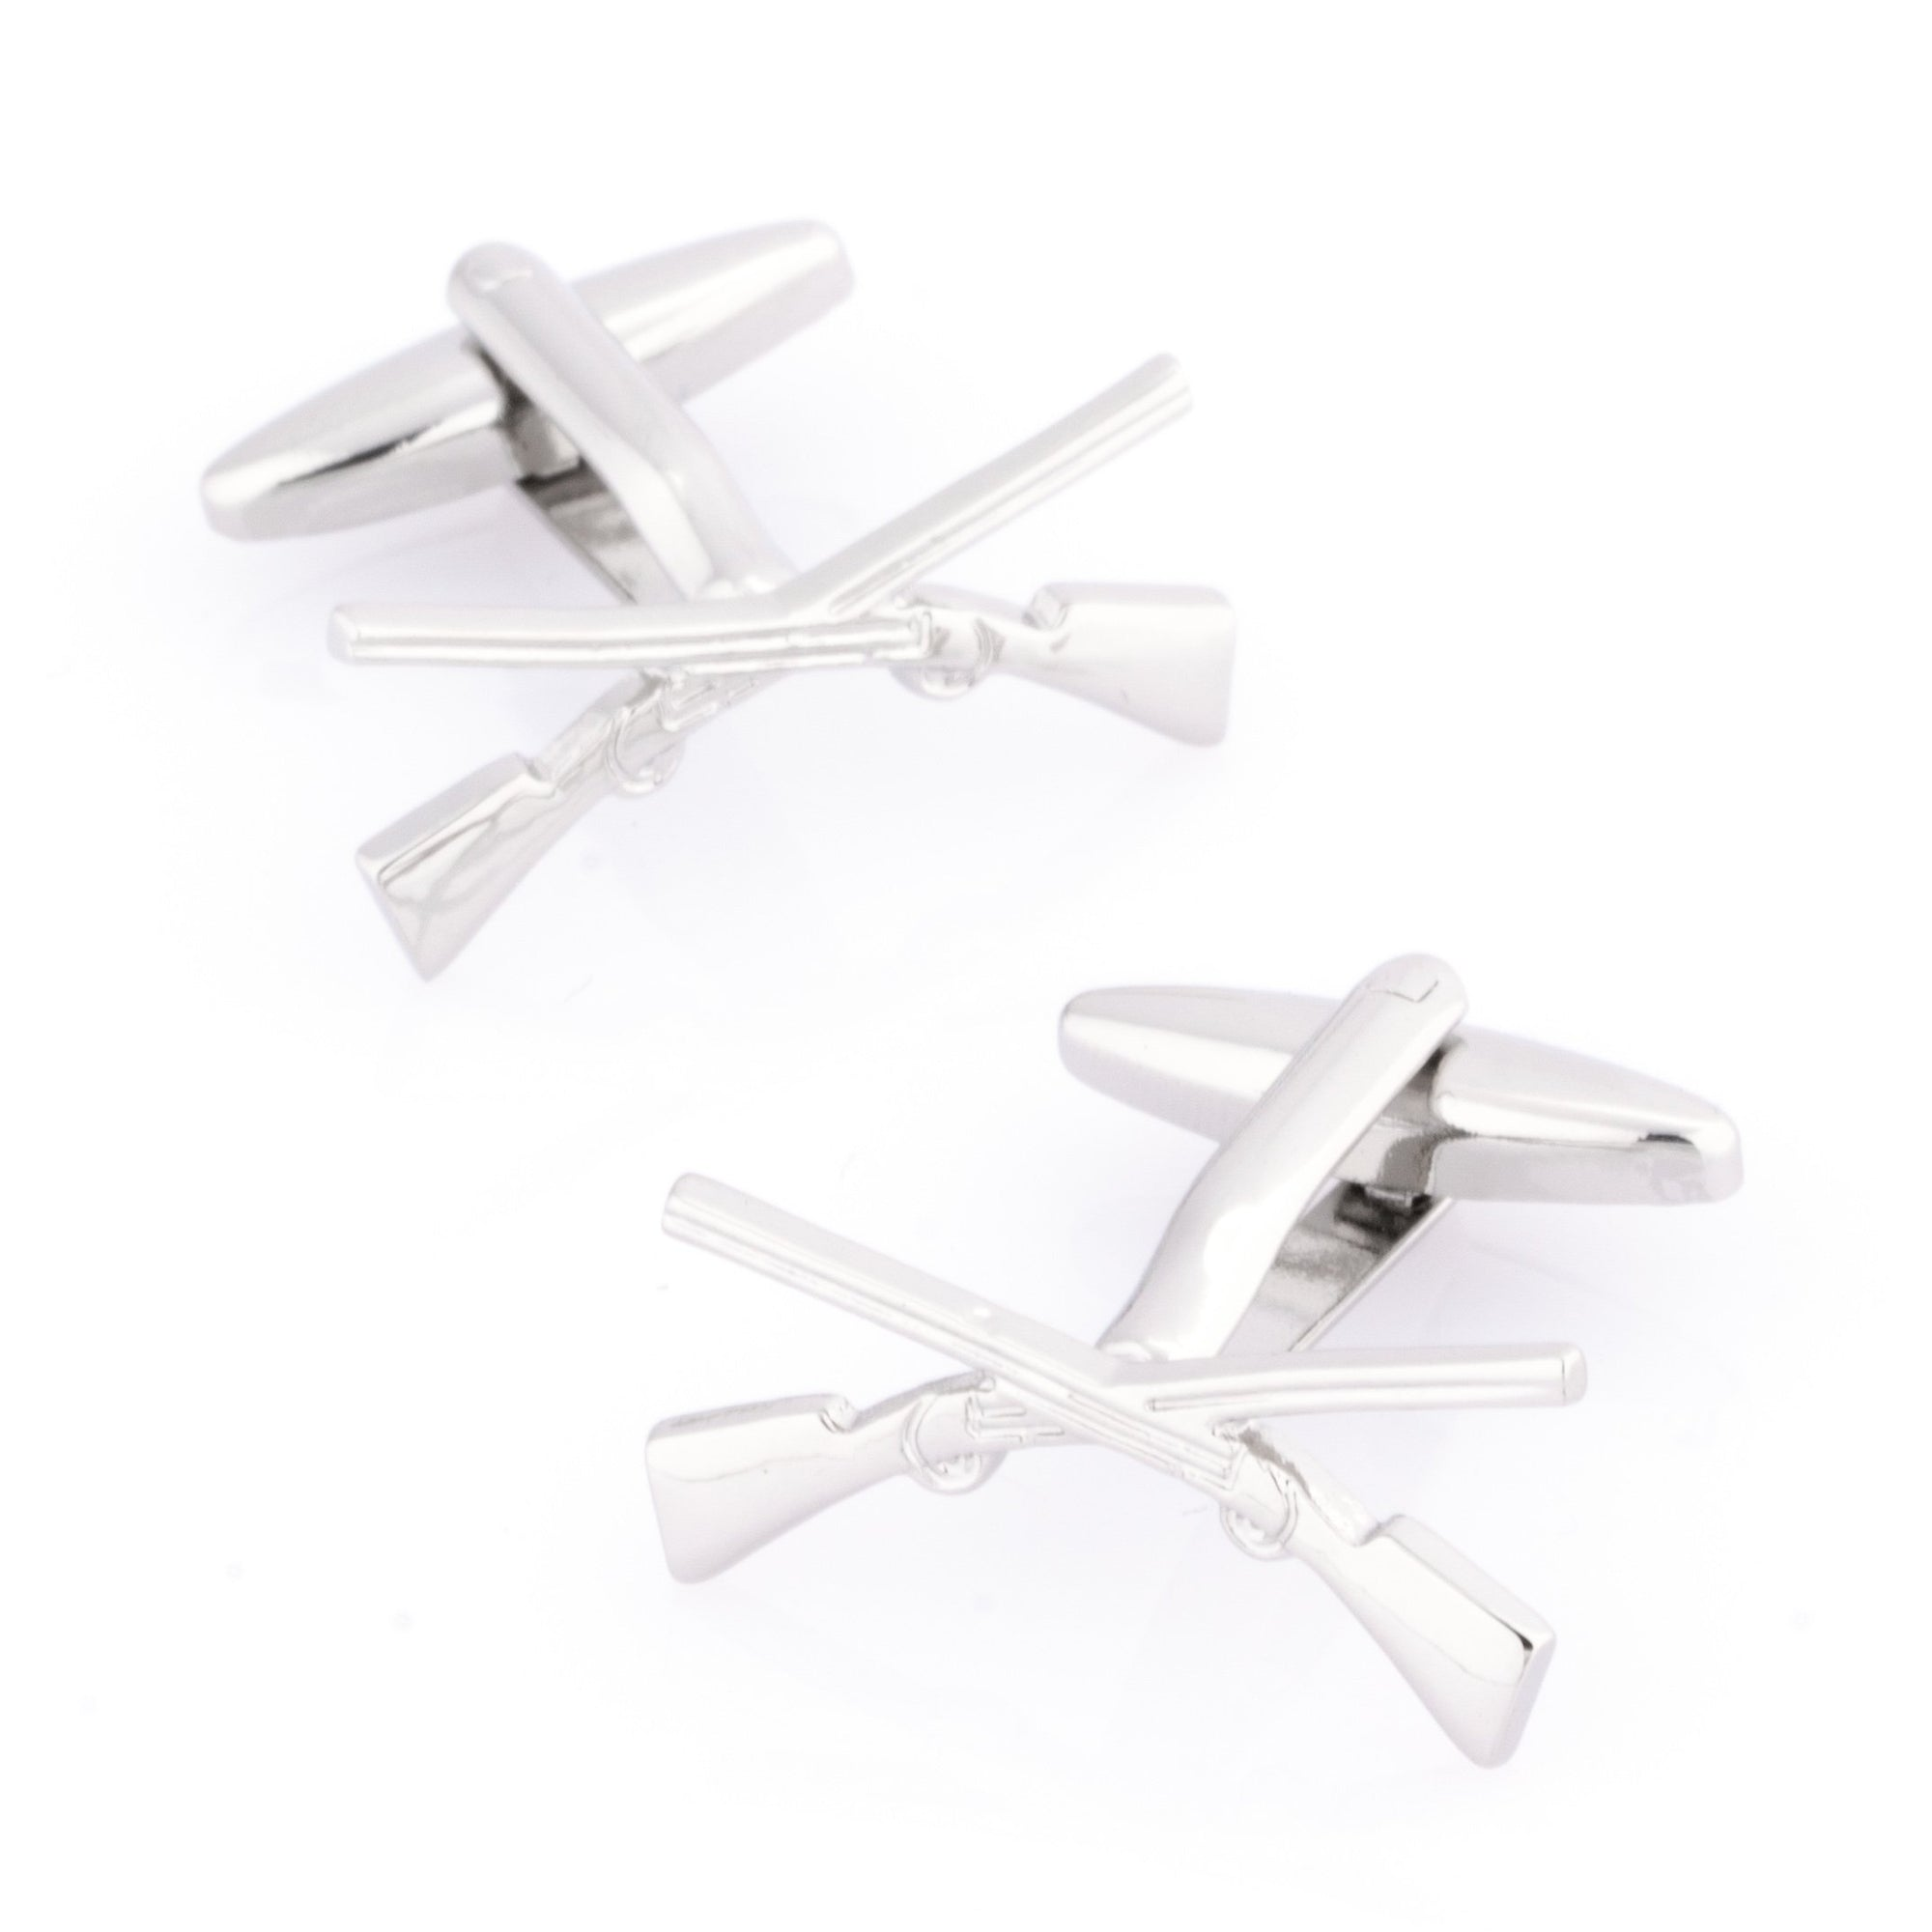 Crossed Rifle Cufflinks, Novelty Cufflinks, Cuffed.com.au, CL9222, Military & Weaponry, Clinks Australia